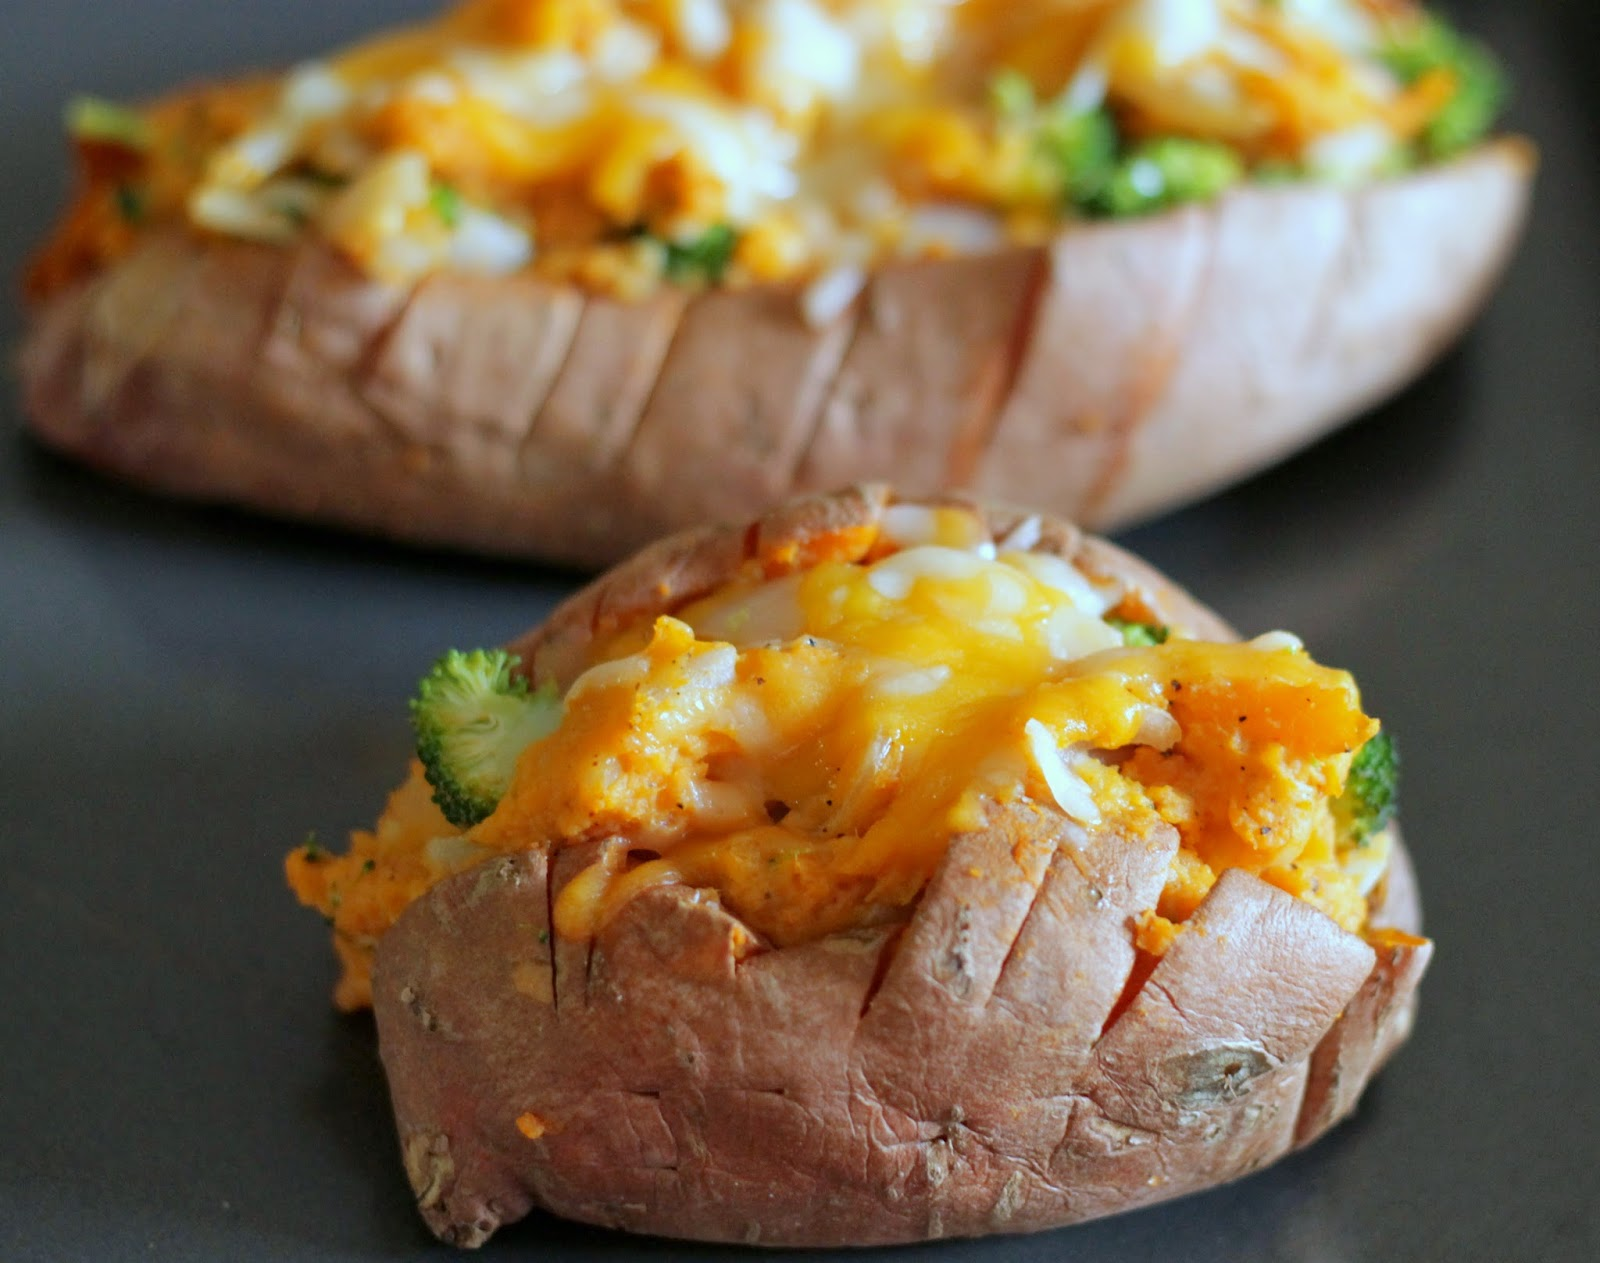 Brunch N' Cupcakes: {Broccoli and Cheese Twice Baked Sweet Potatoes}